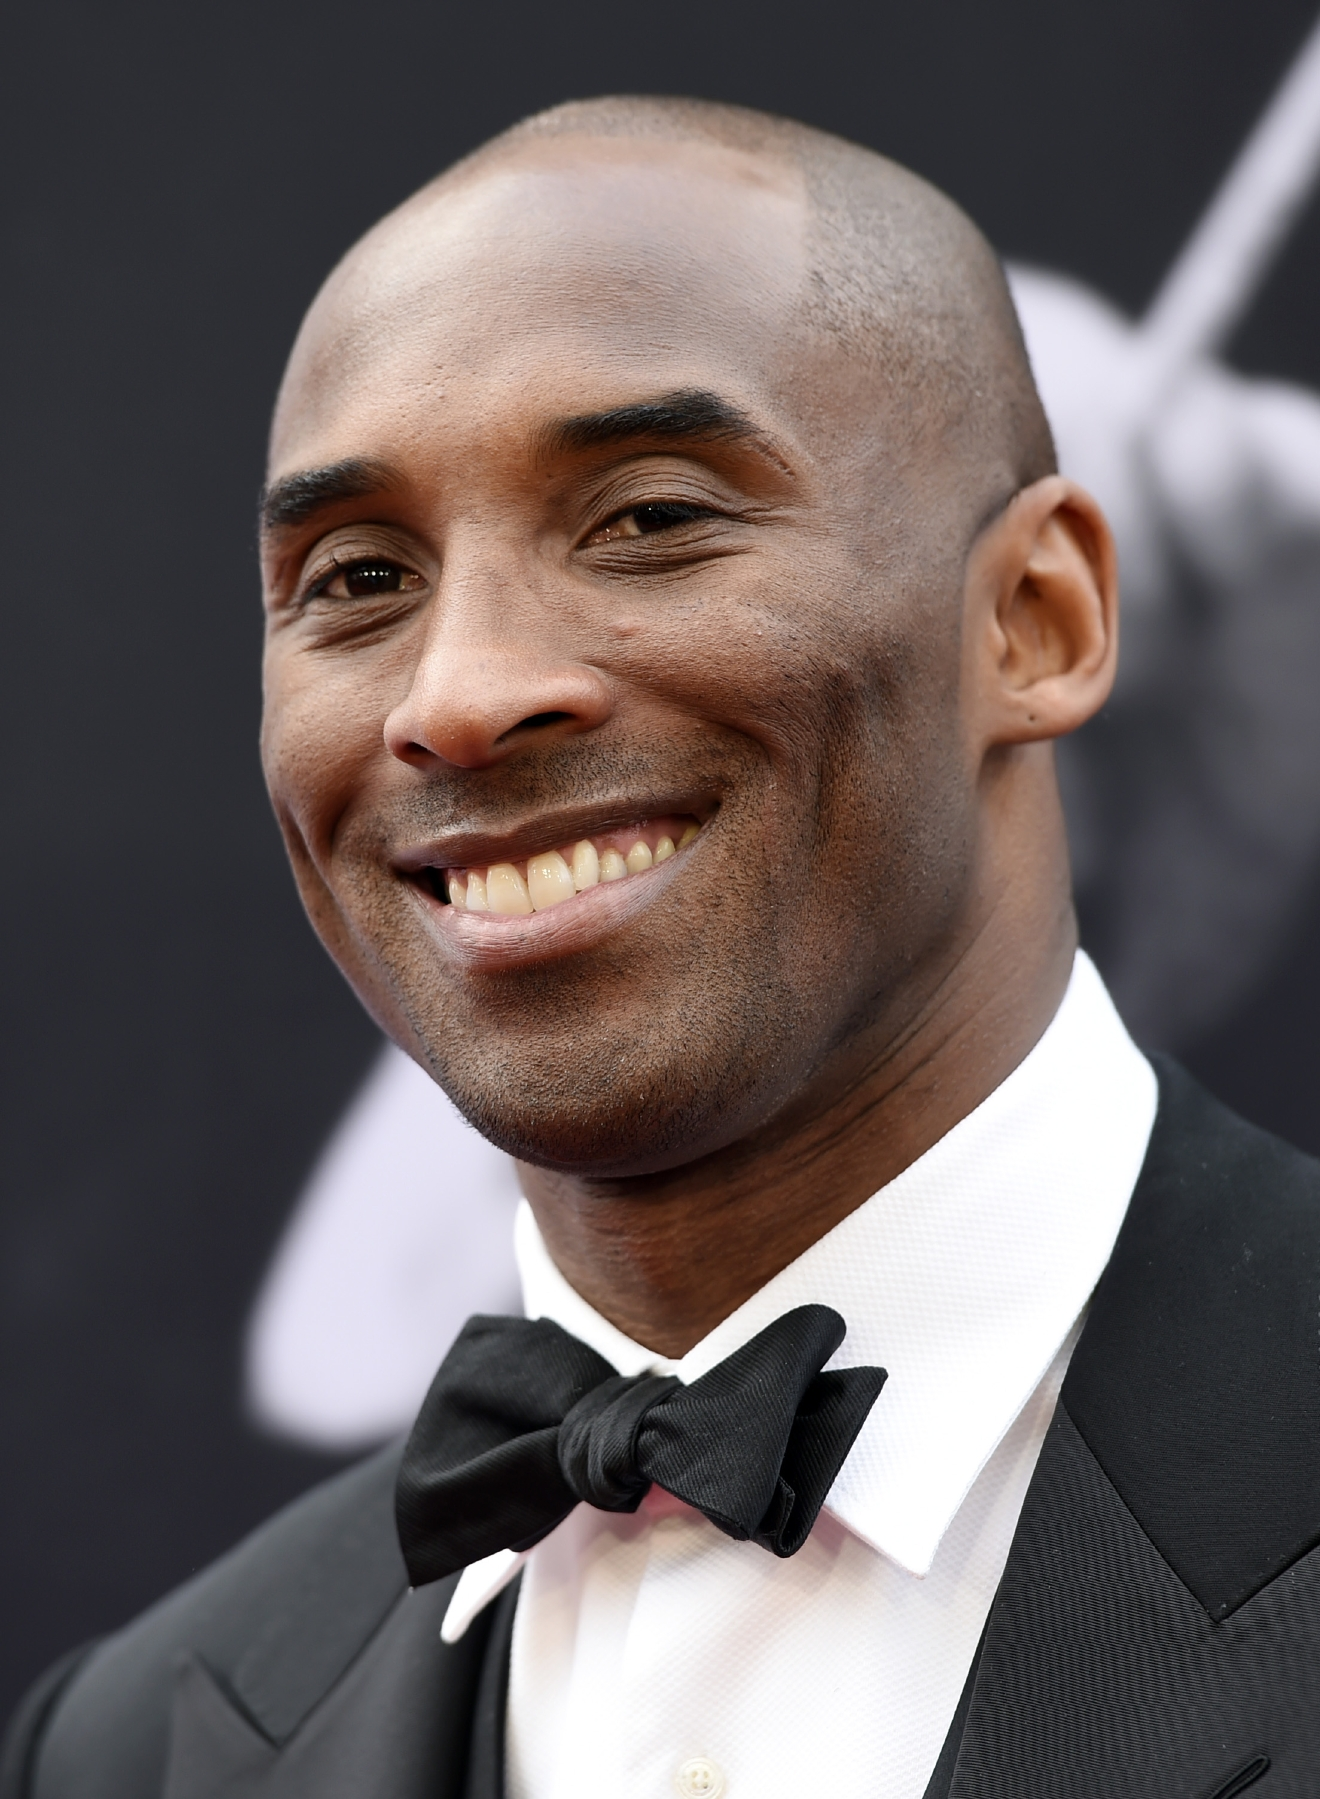 Retired NBA basketball player Kobe Bryant poses at the 2016 AFI Life Achievement Award Gala Tribute to John Williams at the Dolby Theatre on Thursday, June 9, 2016, in Los Angeles. (Photo by Chris Pizzello/Invision/AP)